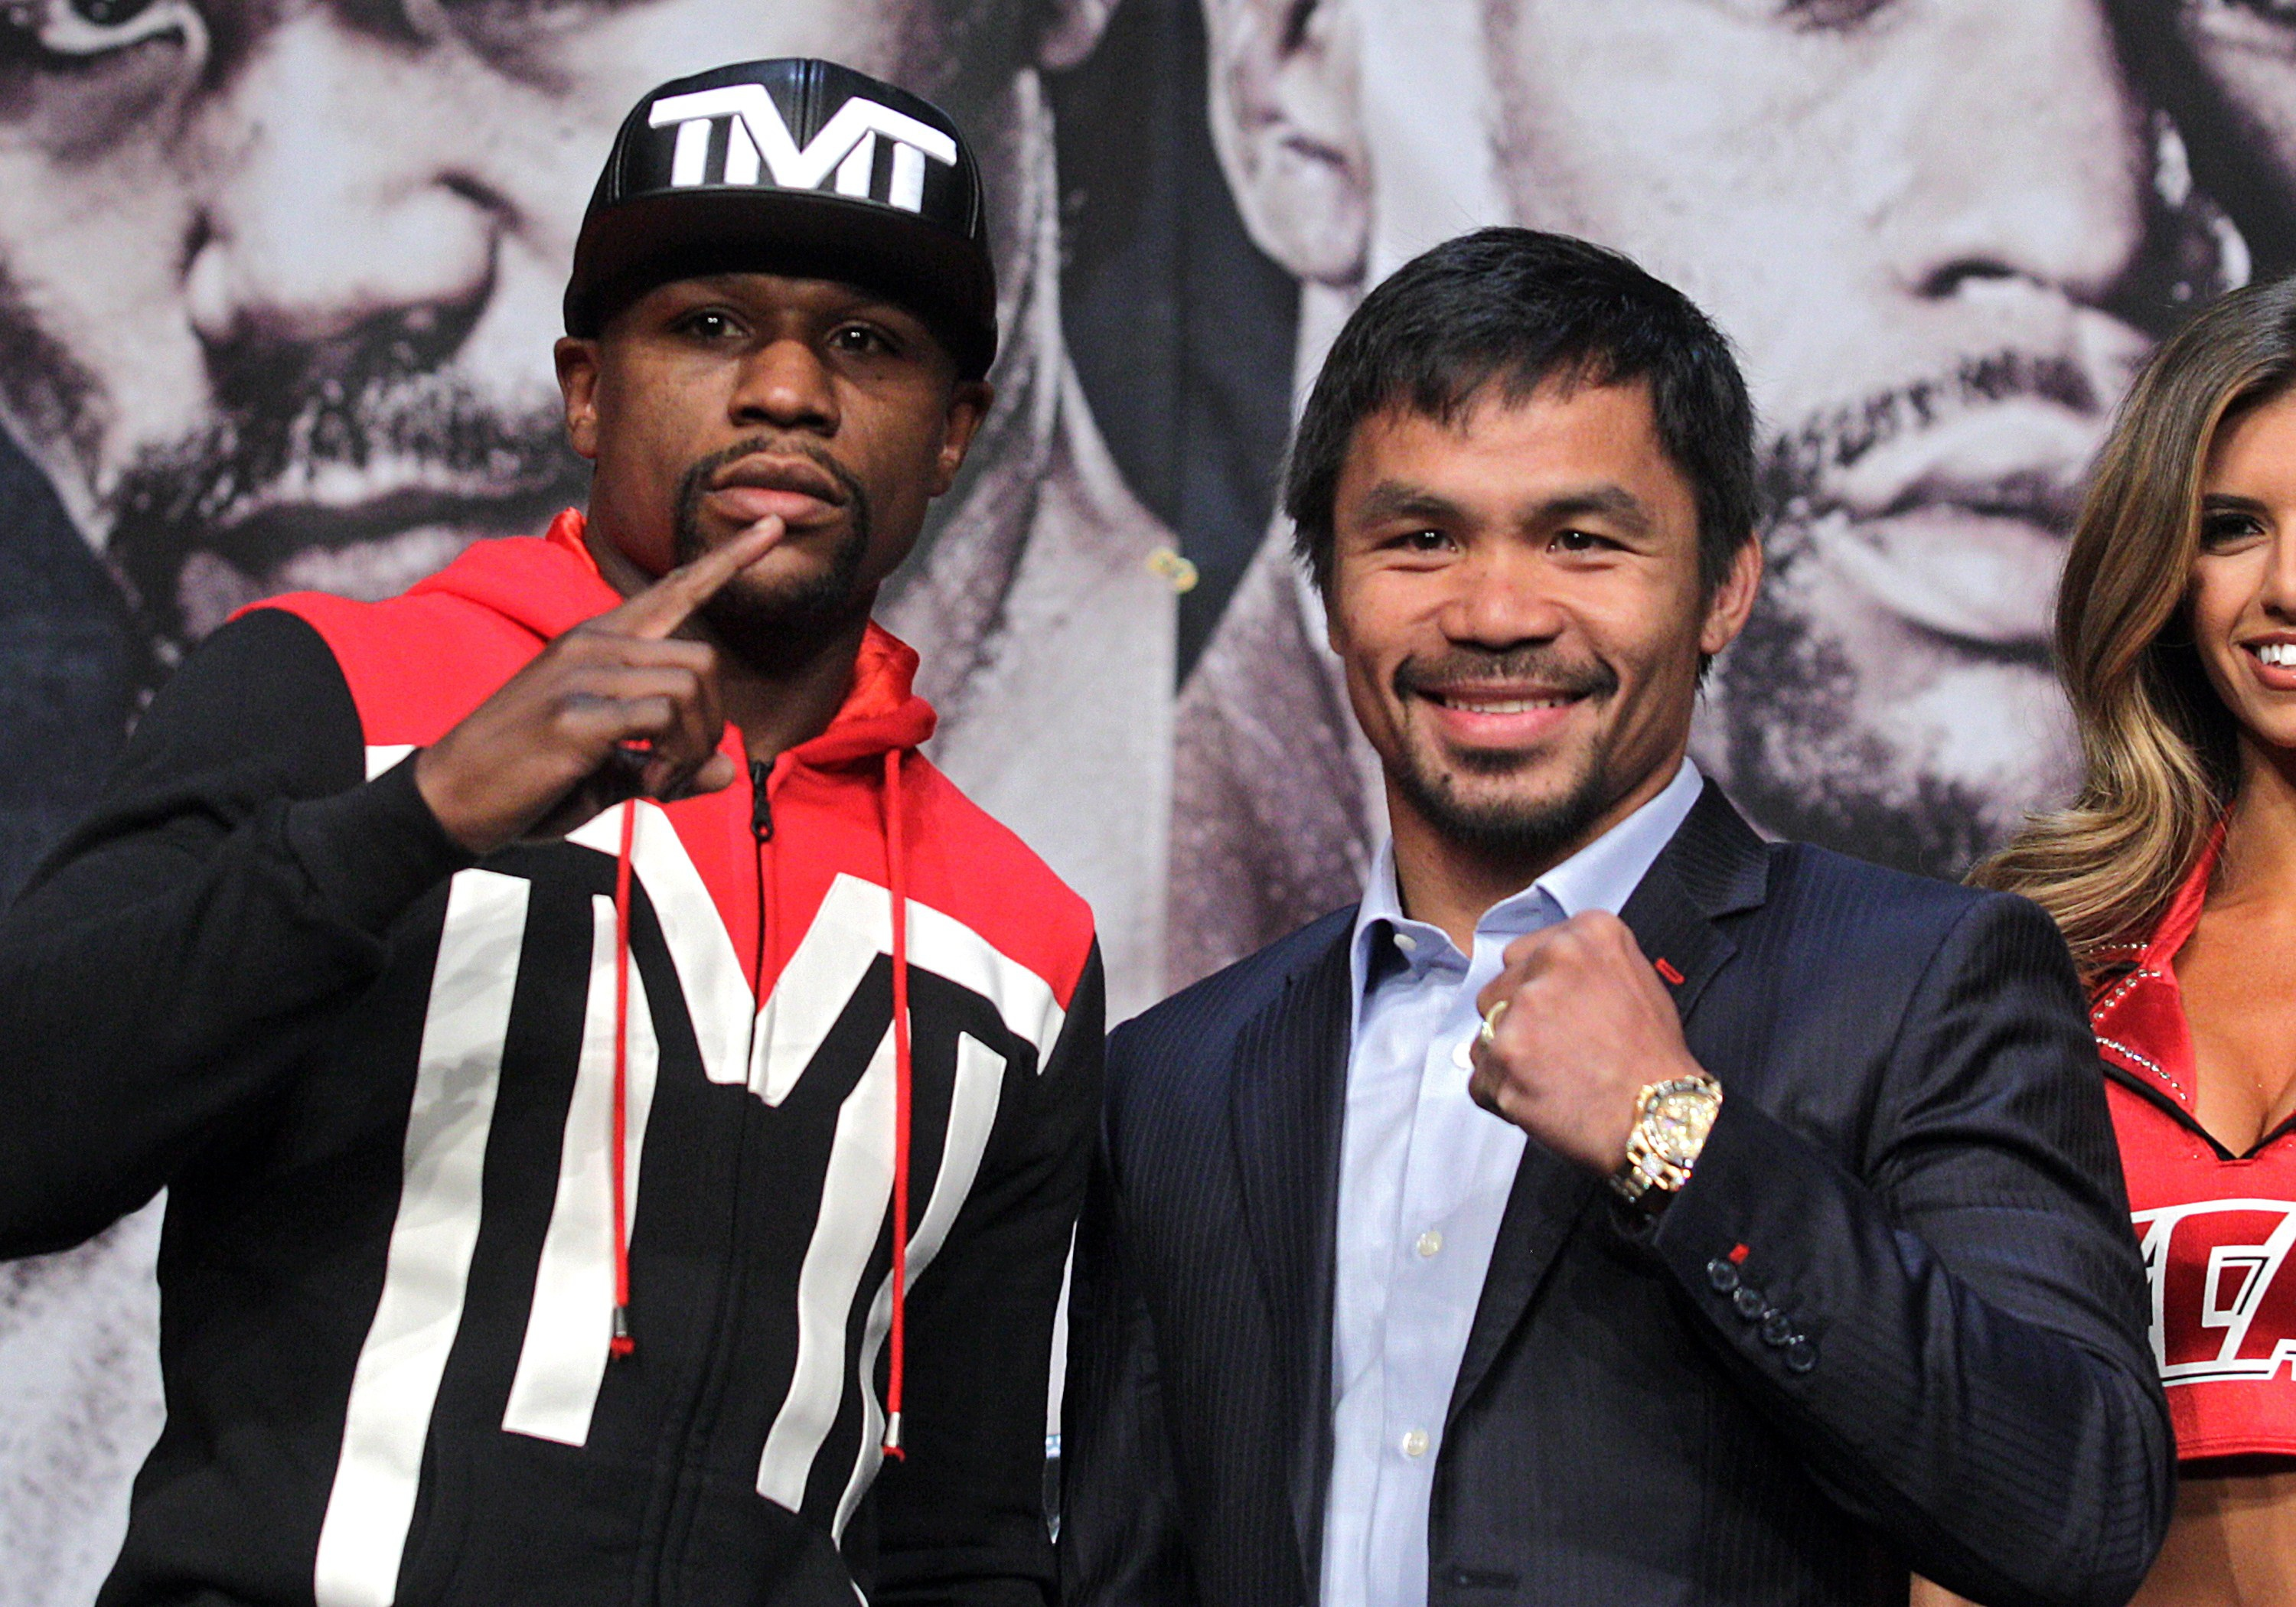 WBC/WBA welterweight champion Floyd Mayweather Jr. (L) and WBO welterweight champion Manny Pacquiao pose during a news conference at the KA Theatre at MGM Grand Hotel & Casino on April 29, 2015 in Las Vegas, Nevada.